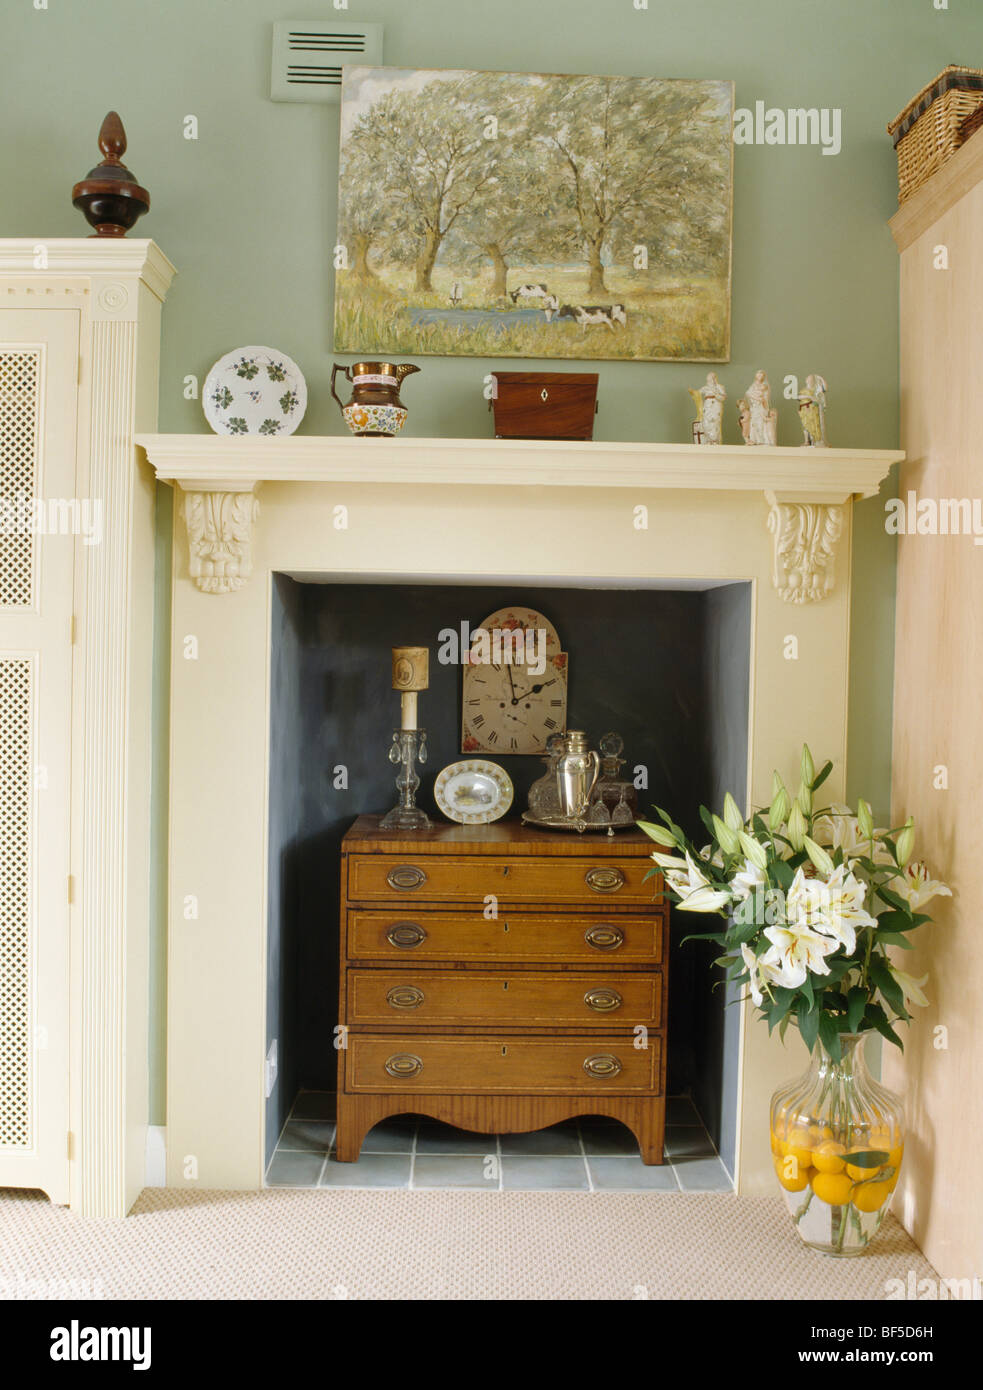 close-up of small chest-of-drawers in white fireplace in pale